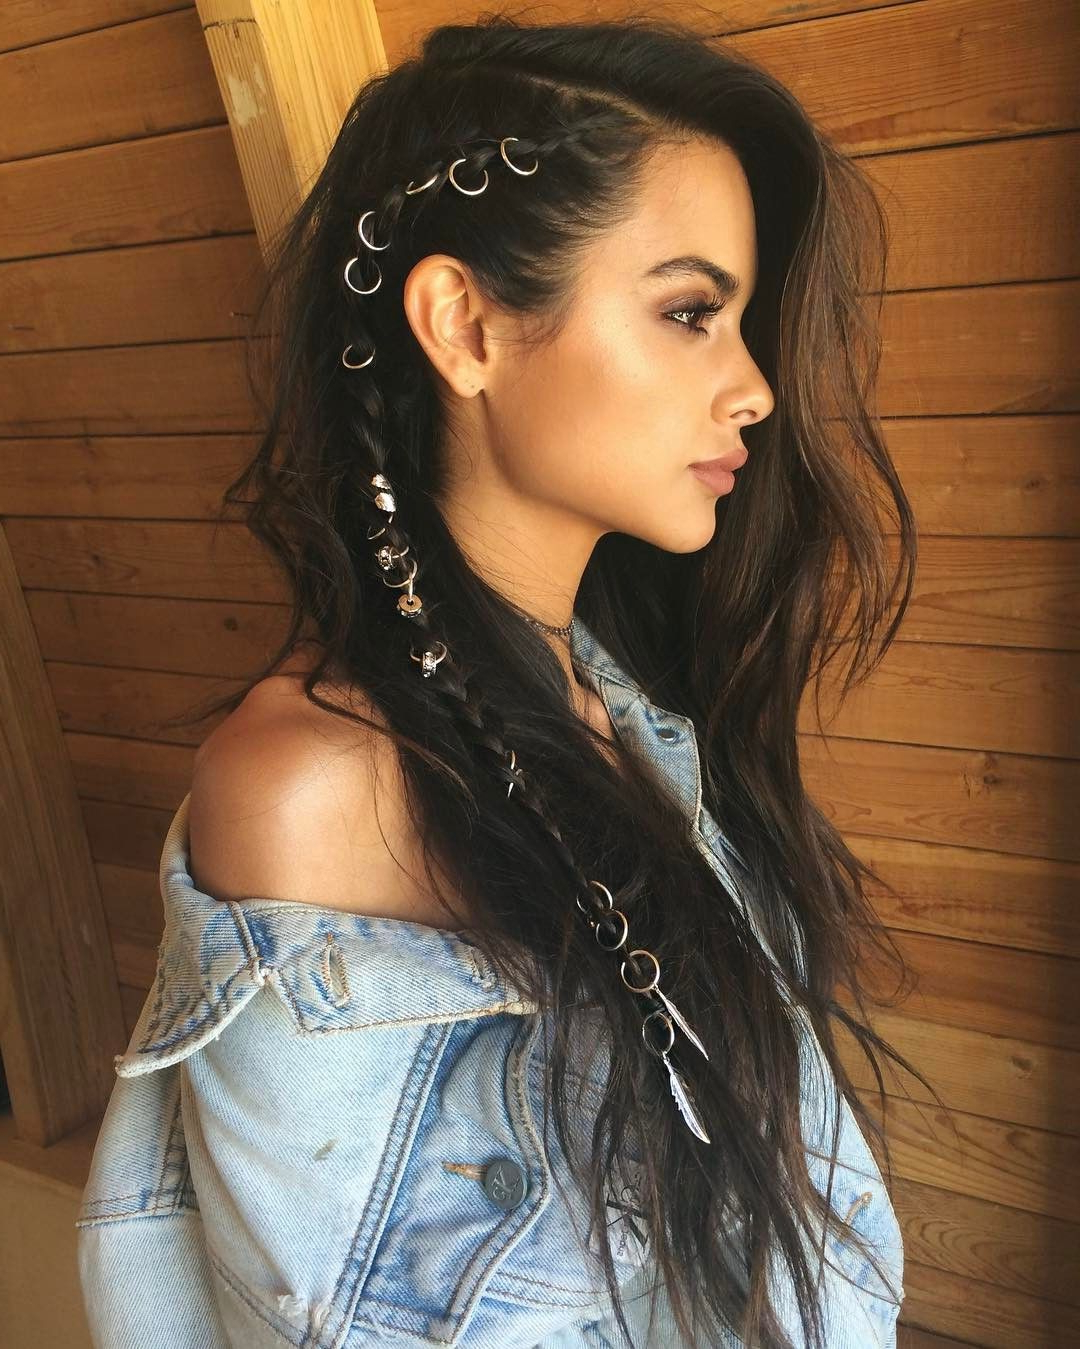 100 Trendy Long Hairstyles For Women To Try In 2017 (Gallery 5 of 20)